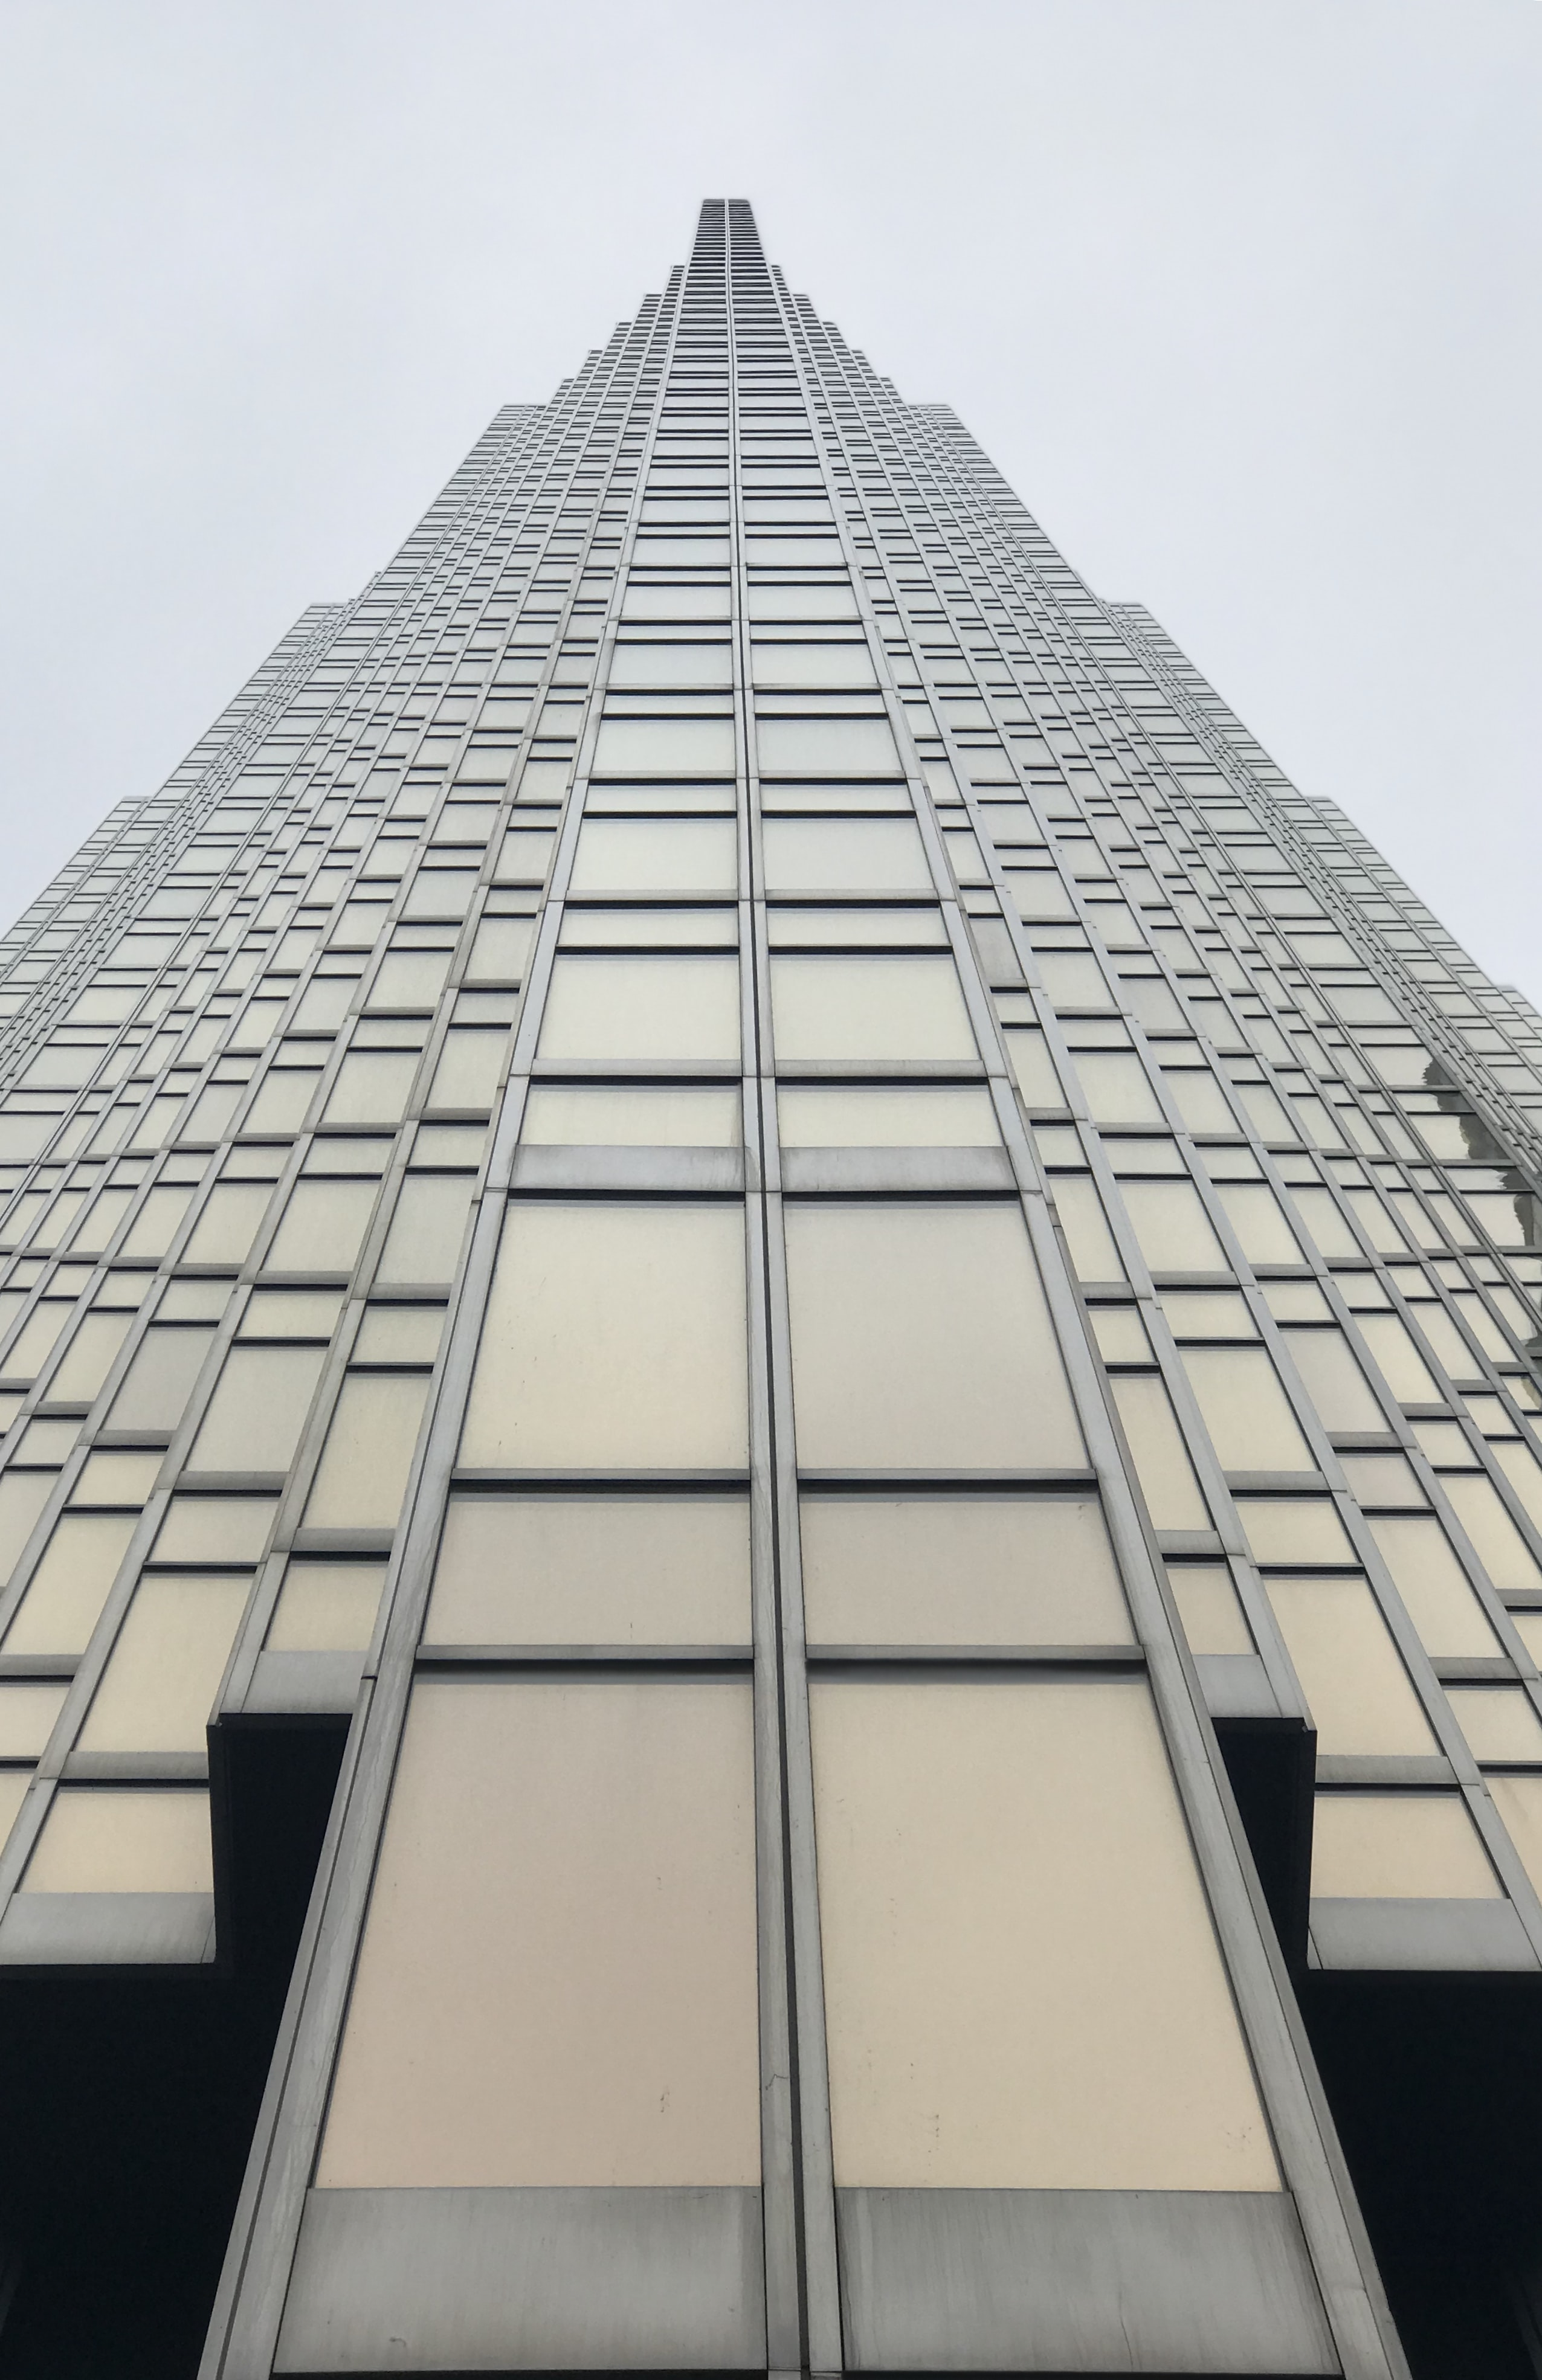 low angle photography of grey glass building